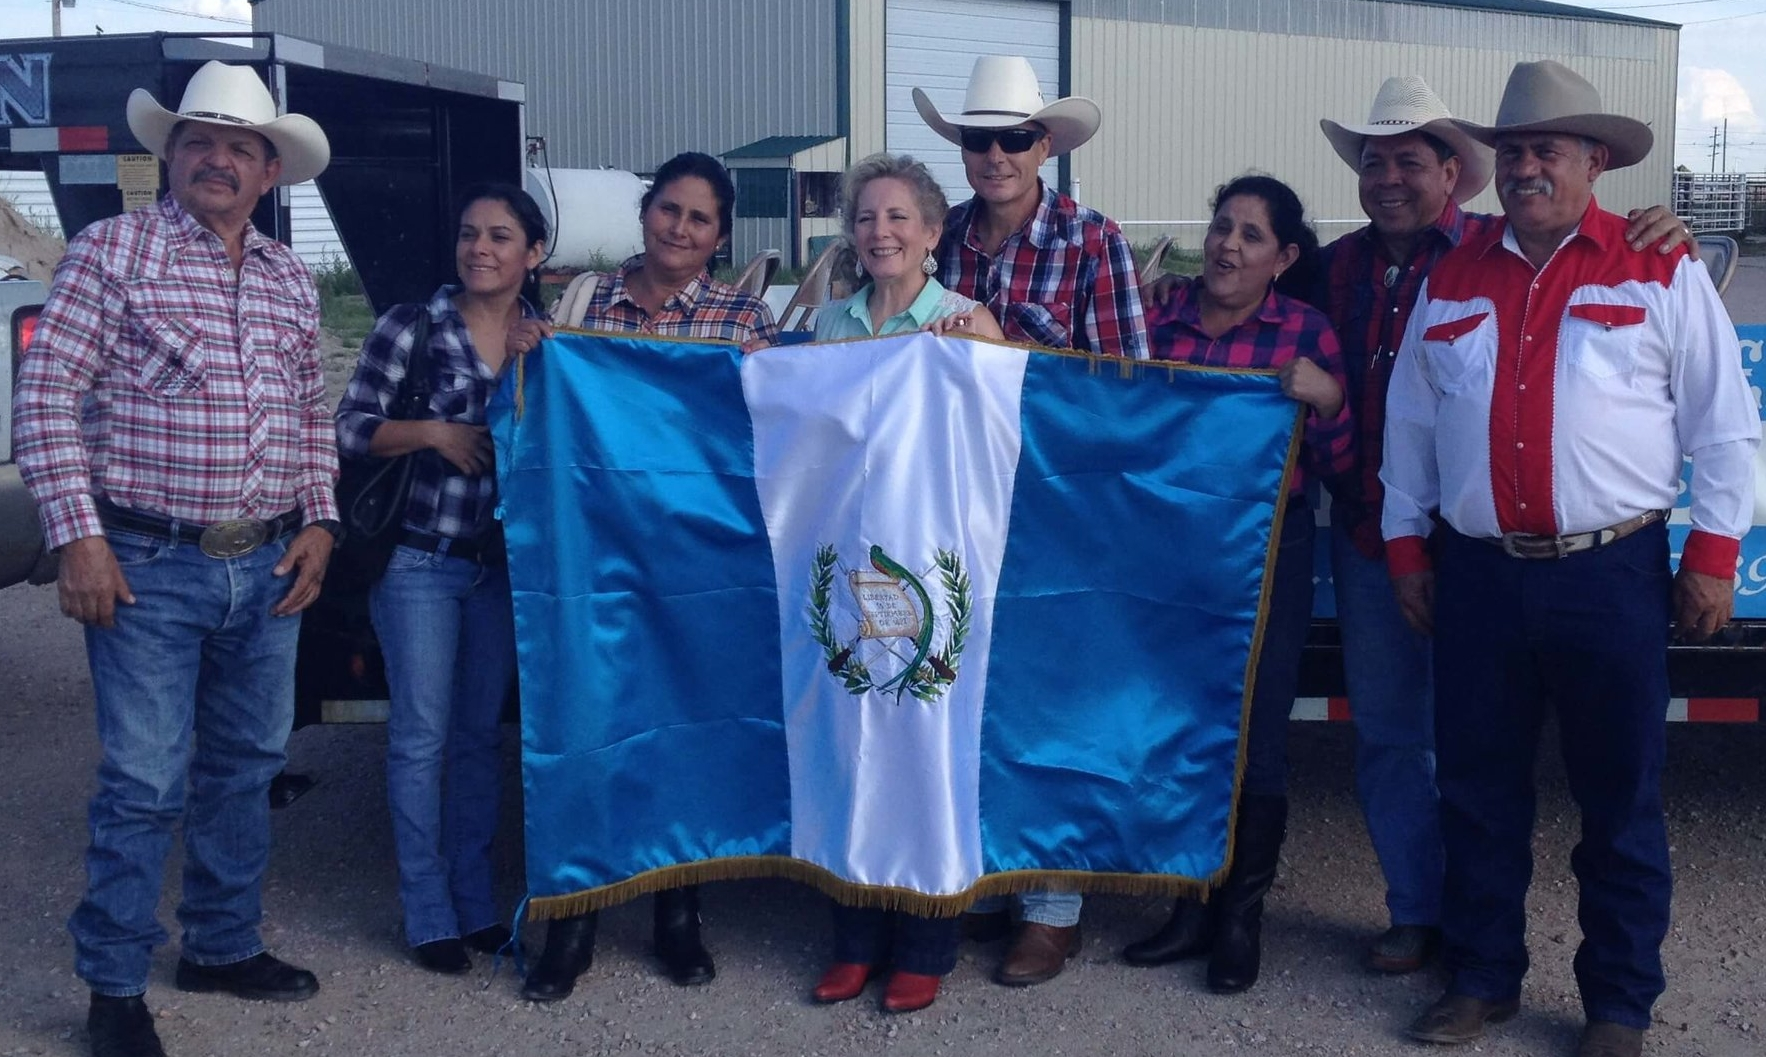 Here is a group picture of the Guatemala delegation that came to Valentine, Nebraska, for their rodeo in August of 2015. Marcos is on the far left.